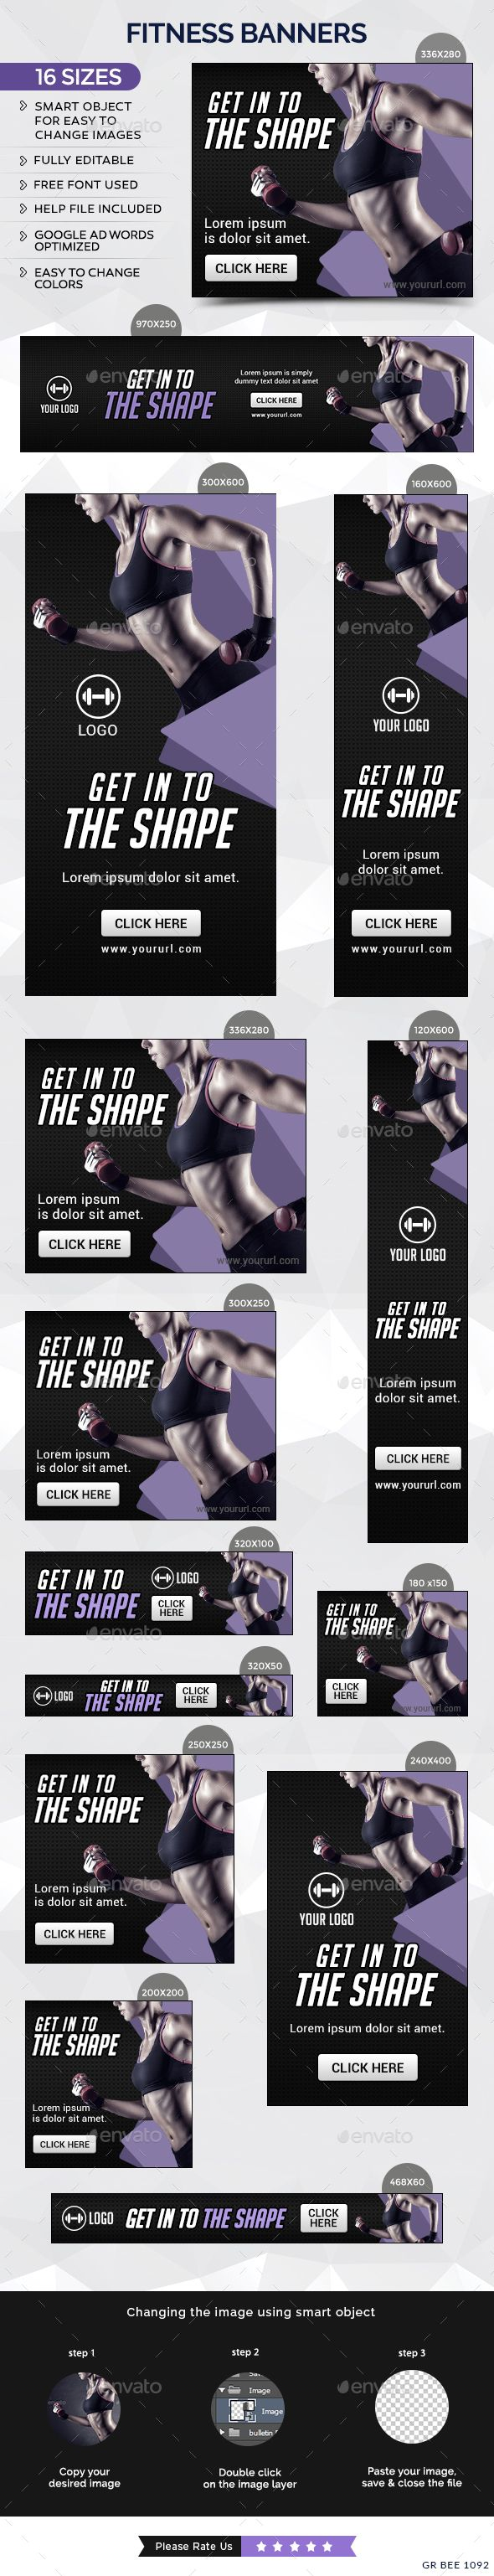 Fitness Web Banners Template PSD #ad #promotion Download: http://graphicriver.net/item/fitness-banners/14539349?ref=ksioks